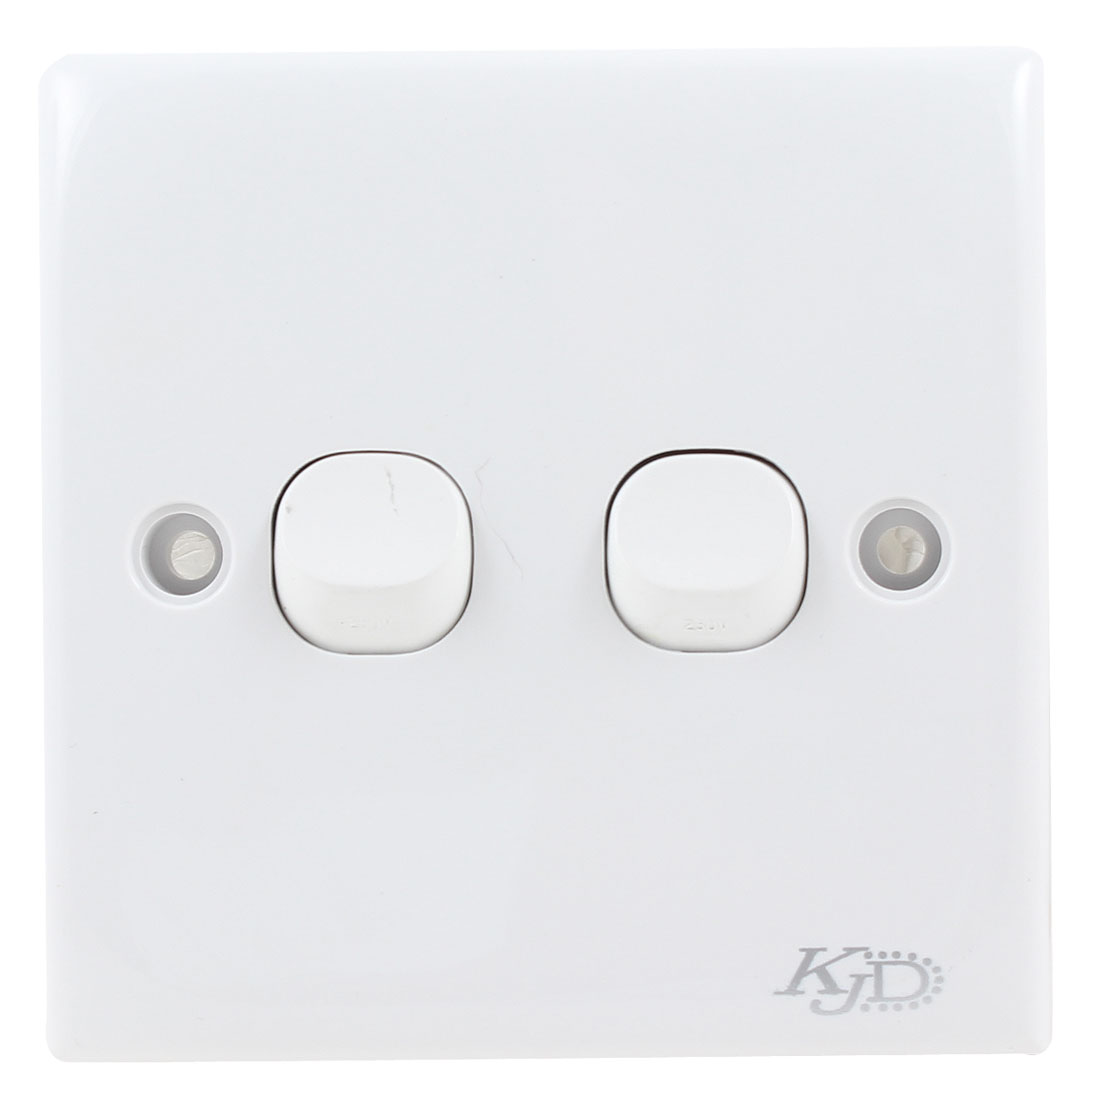 Household AC 250V 10A 2 Gang On/Off SPST Square Light Switch Wall Plate